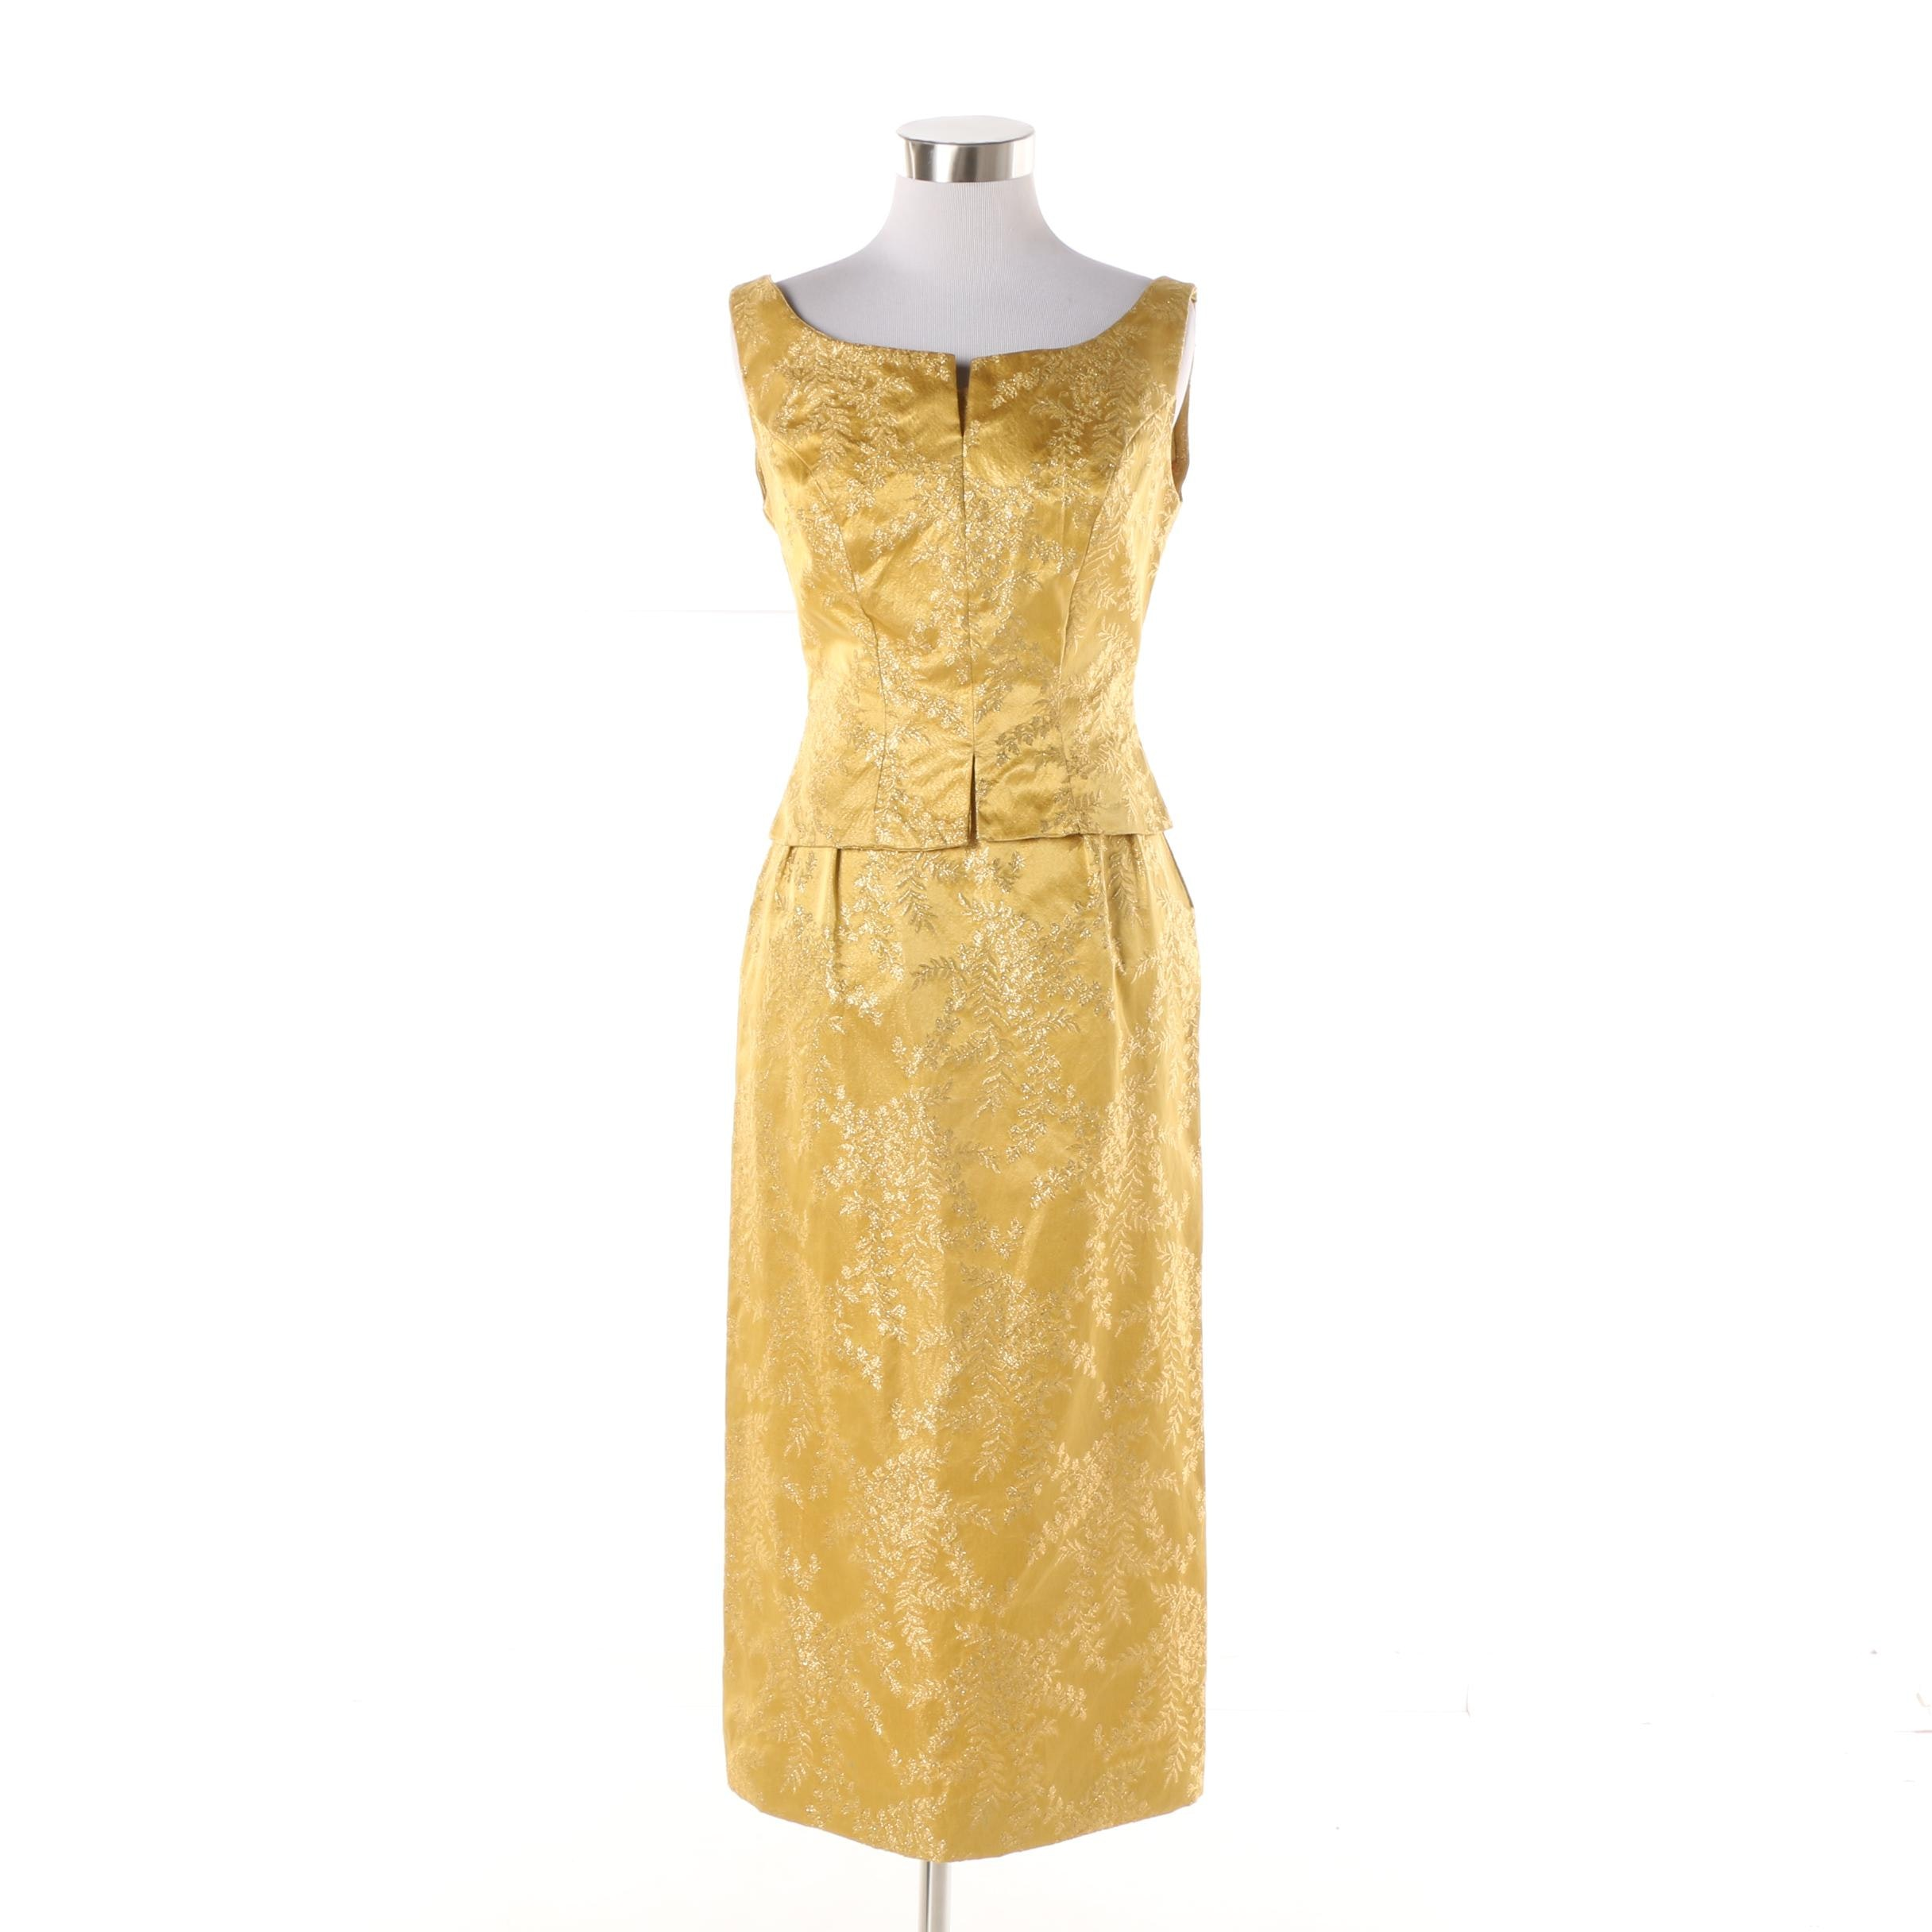 Women S 1960s Vintage Golden Brocade Sleeveless Cocktail Dress Ebth